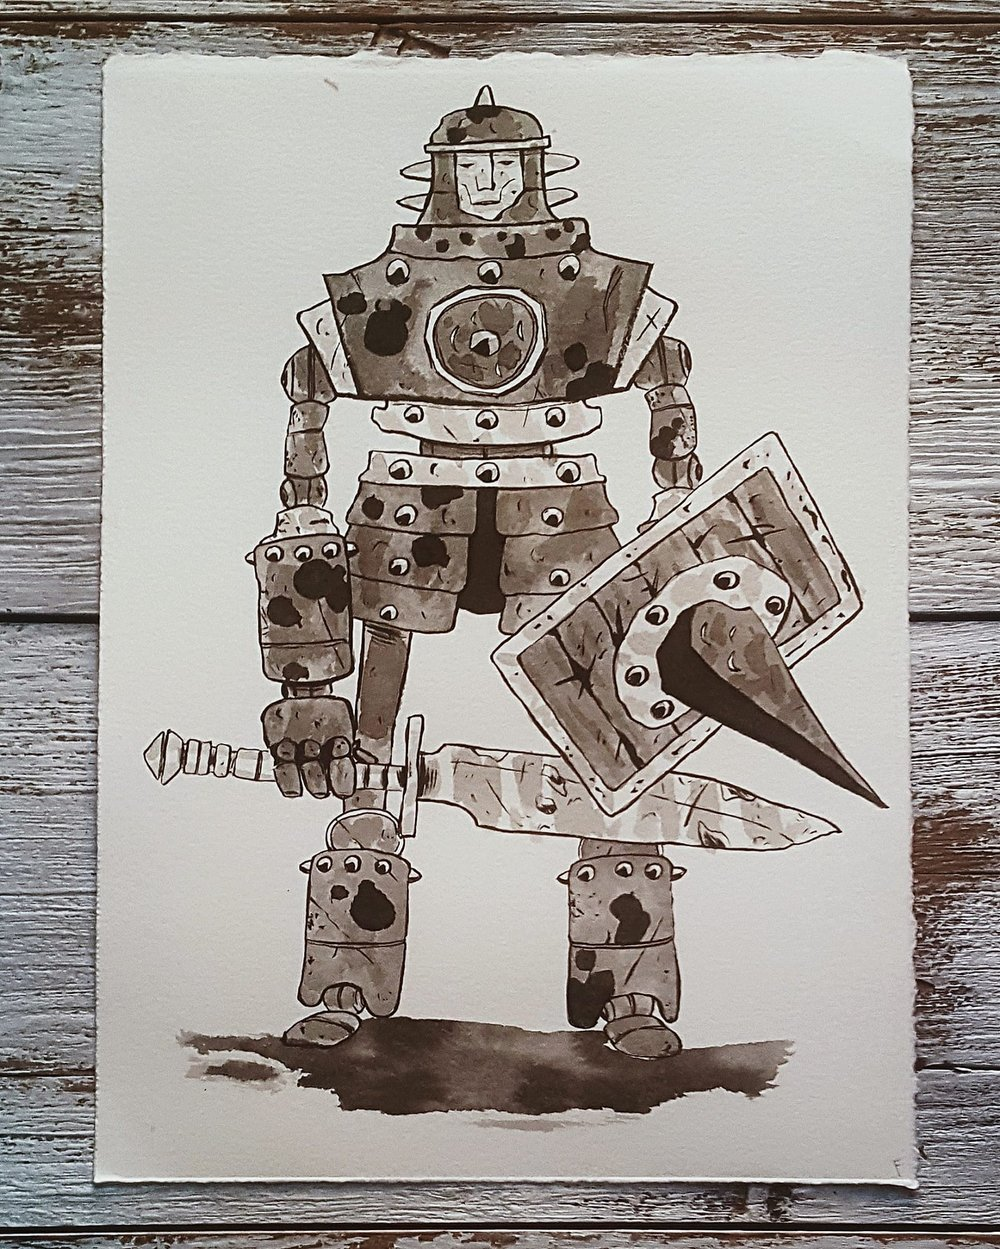 A Knight a Day No. 26, Machine Sentry - These mechanical guards are the last vestige of a lost kingdom of talented smiths. They roam the area where it used to stand, ready to defend the long gone city.